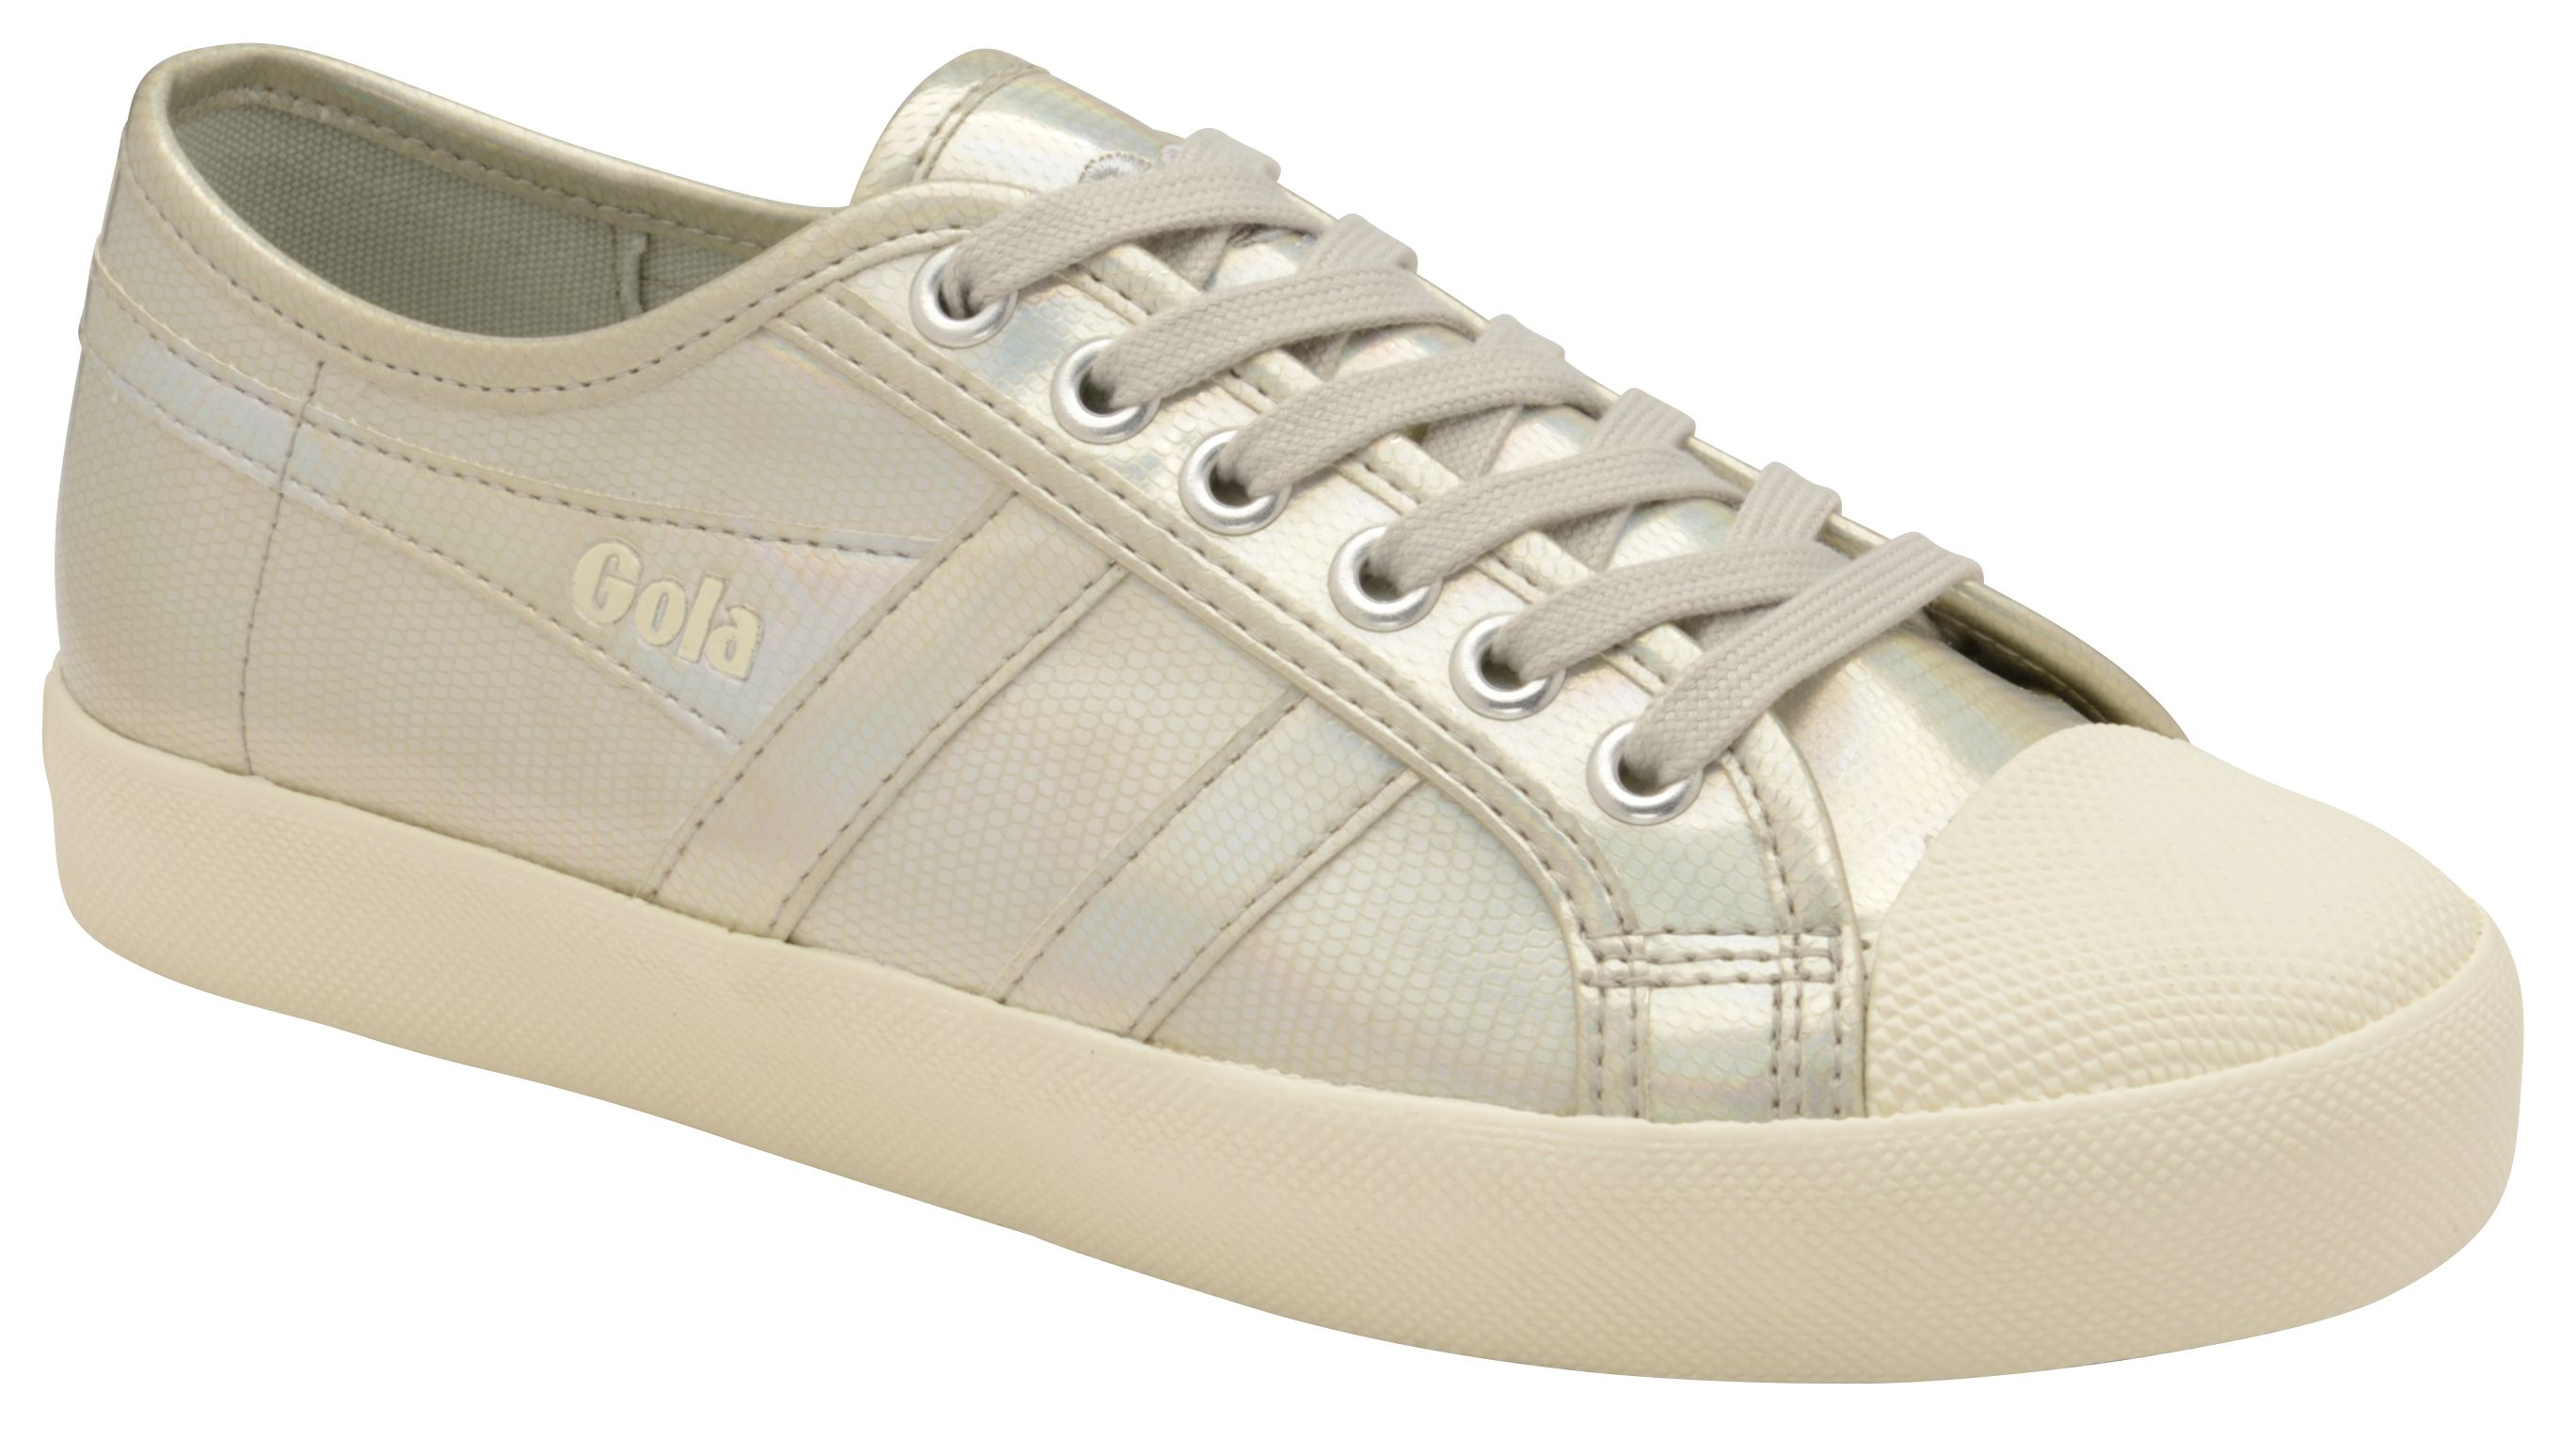 Gola Coaster Lizard Lace Up Trainers, Silver Silverlic